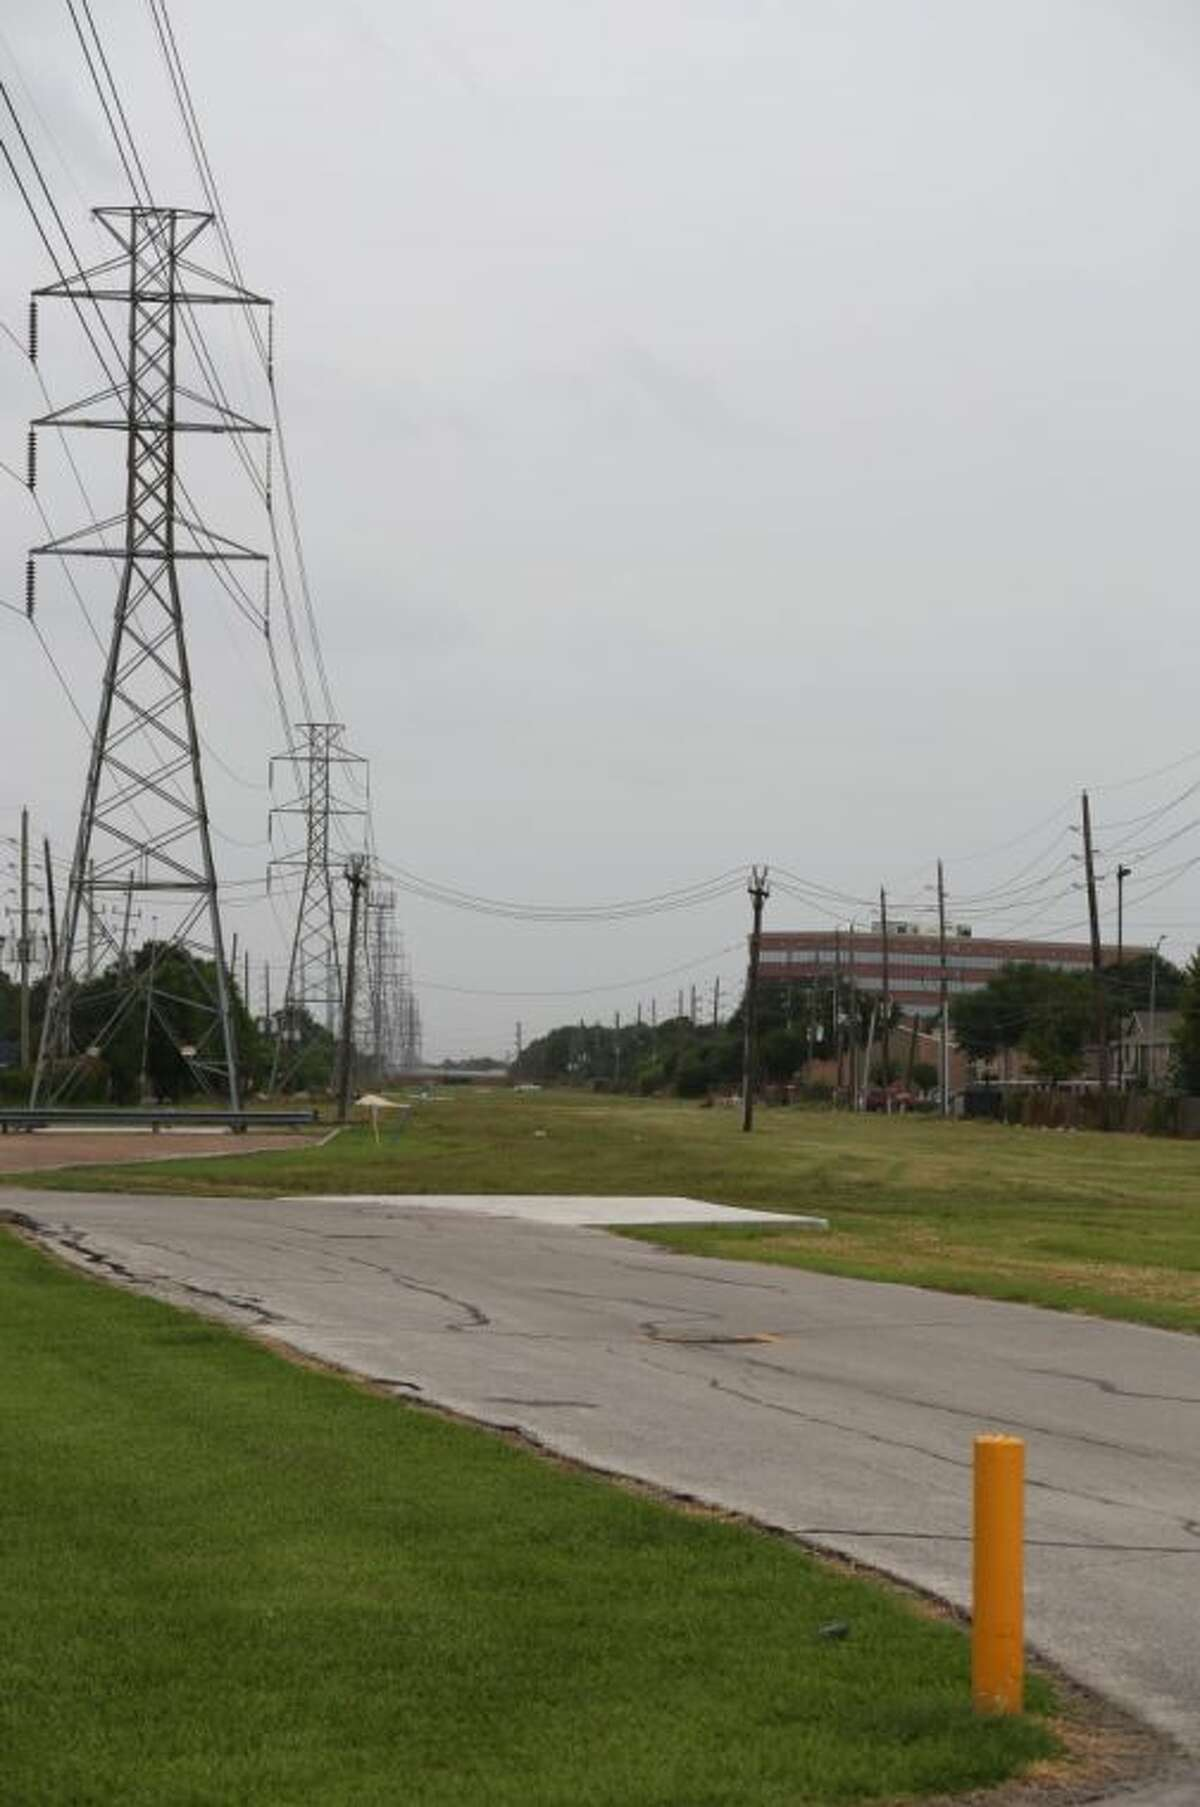 The Westchase District is negotiating with CenterPoint to put a hike and bike trail on this corridor. This view is looking south from near Westheimer toward Richmond.